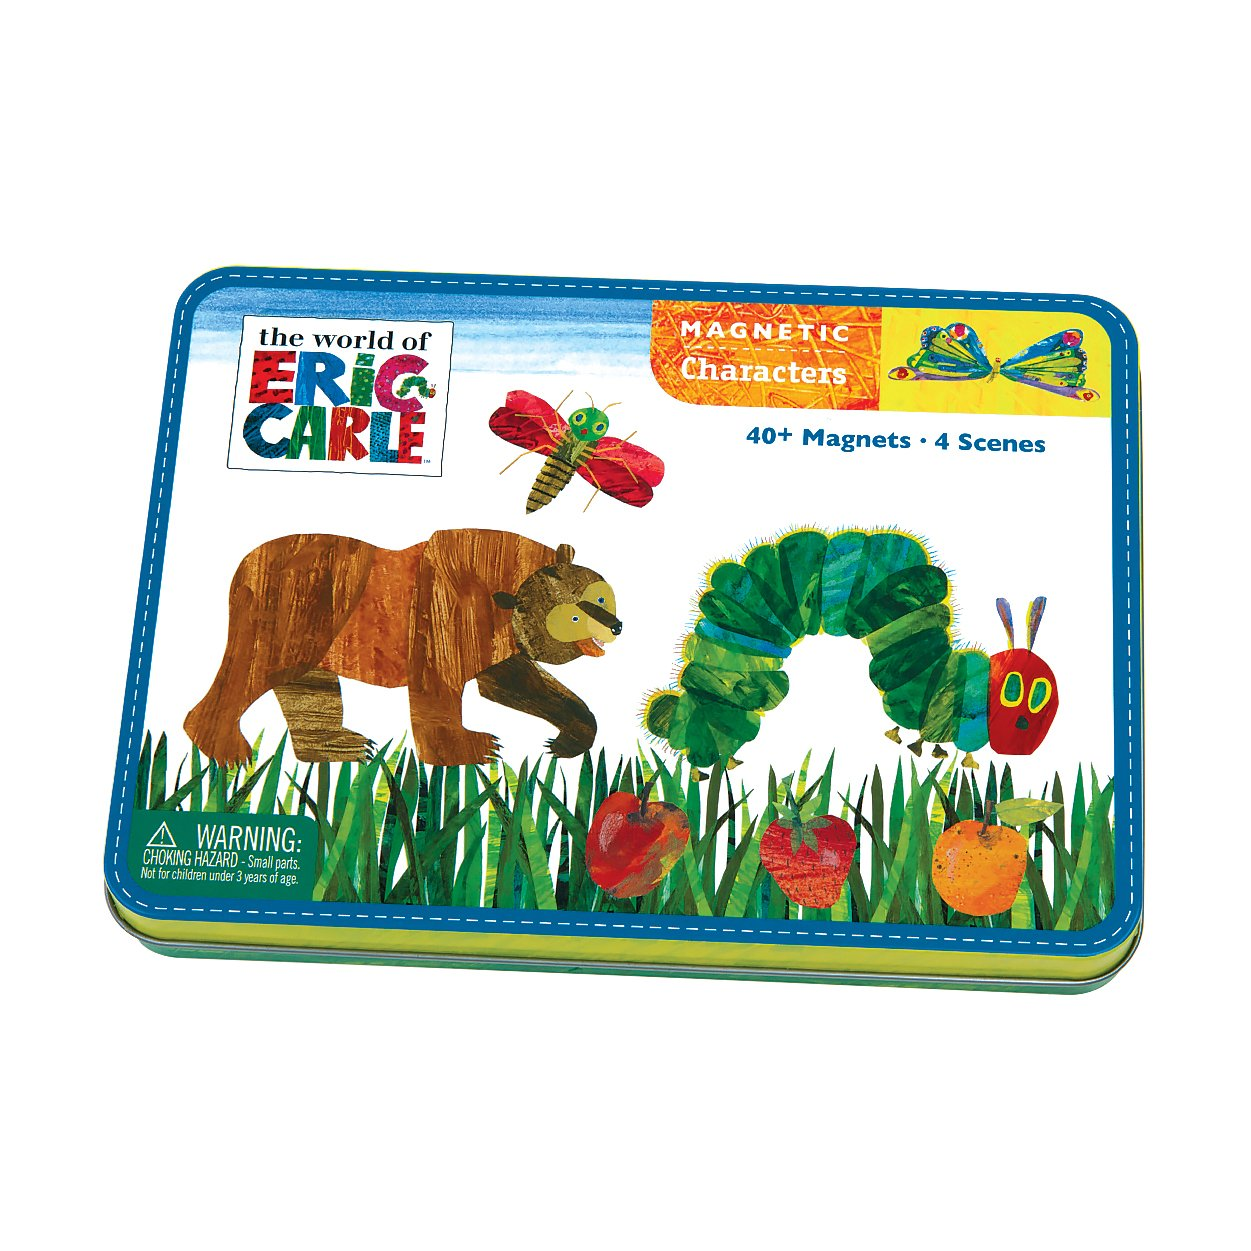 Mudpuppy Friends of The Very Hungry Caterpillar Magnetic Characters from The World of Eric Carle in Hinged Tin – Ages 3+